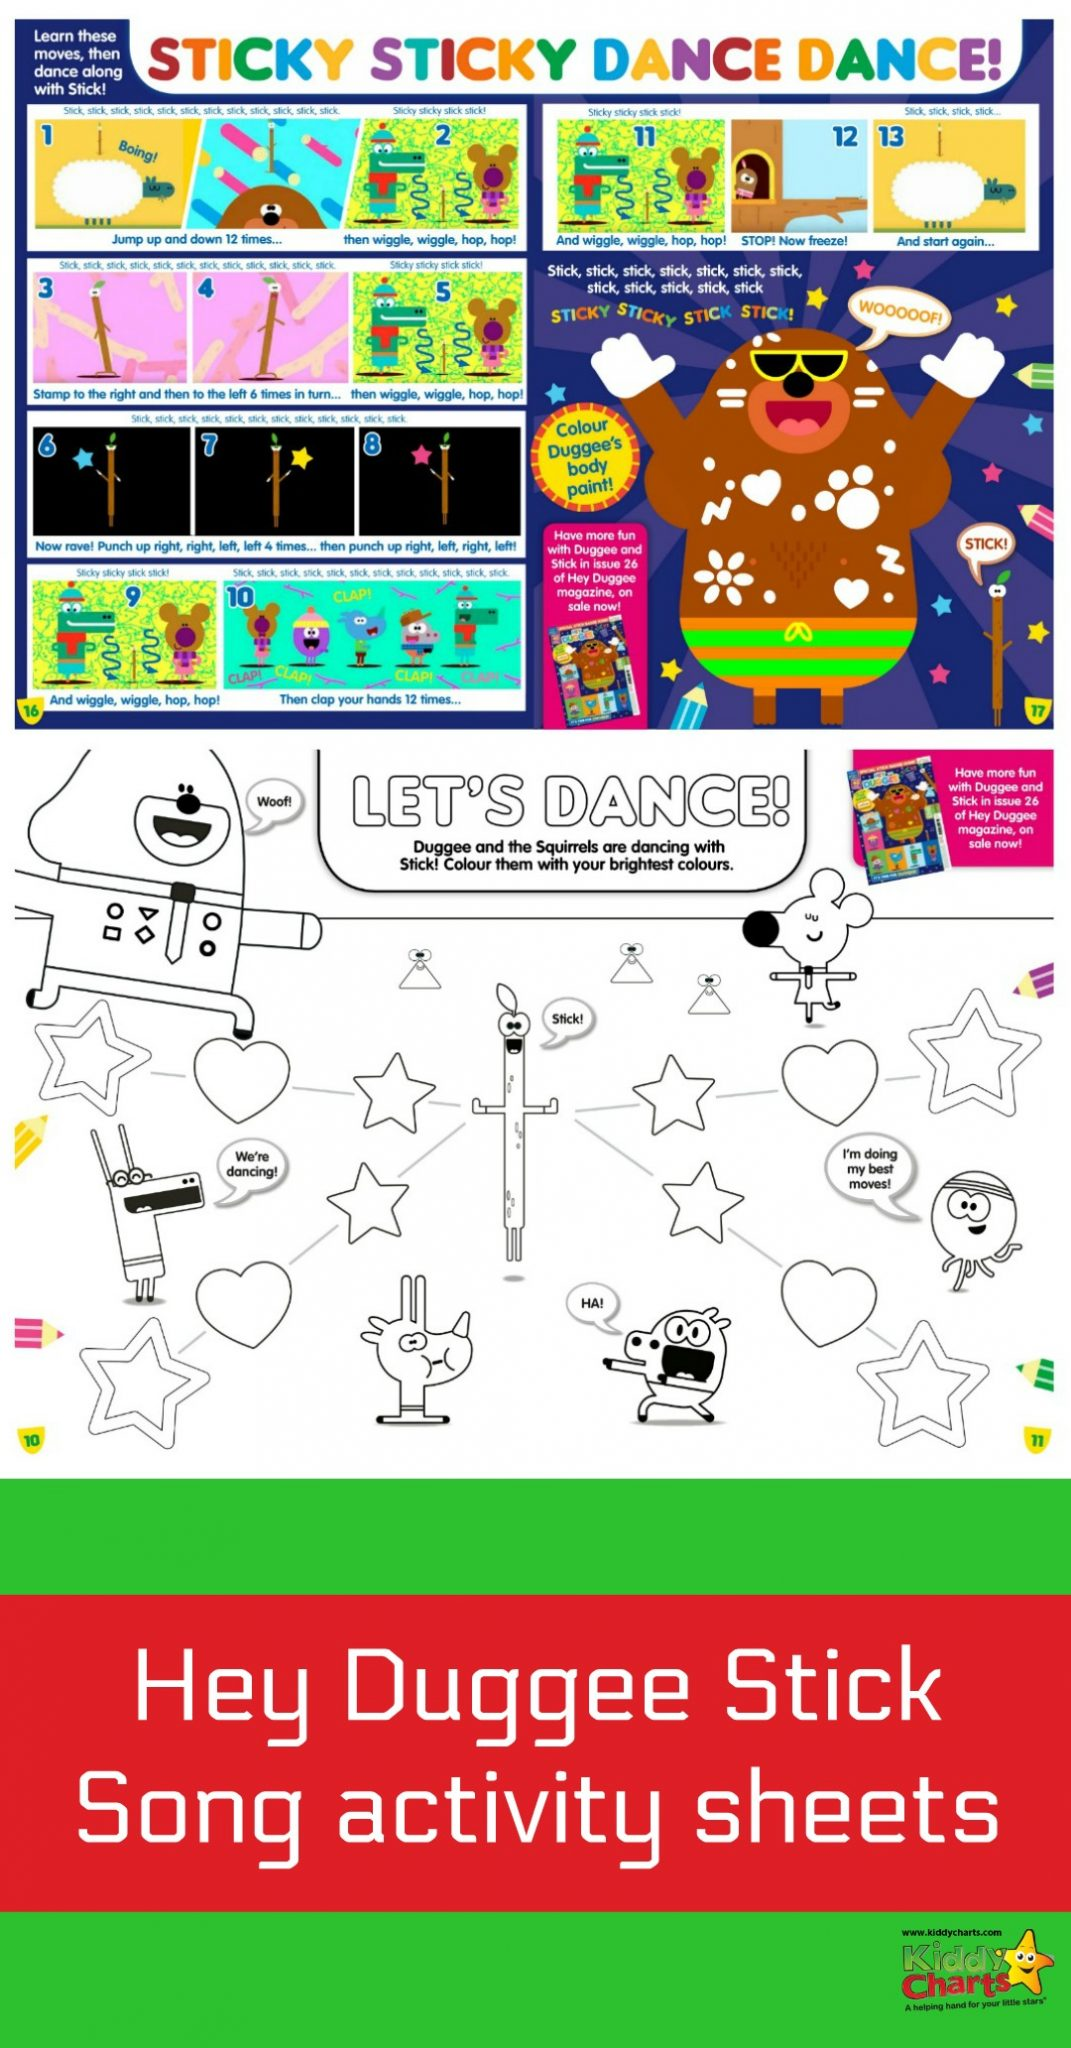 Check out the fabuloous Hey Duggee activity sheets we have from their Hey Duggee 'Special Stick Badge Issue' magazine which is out now. Learn the stick dance with ur kids! #kids #toddlers #dancing